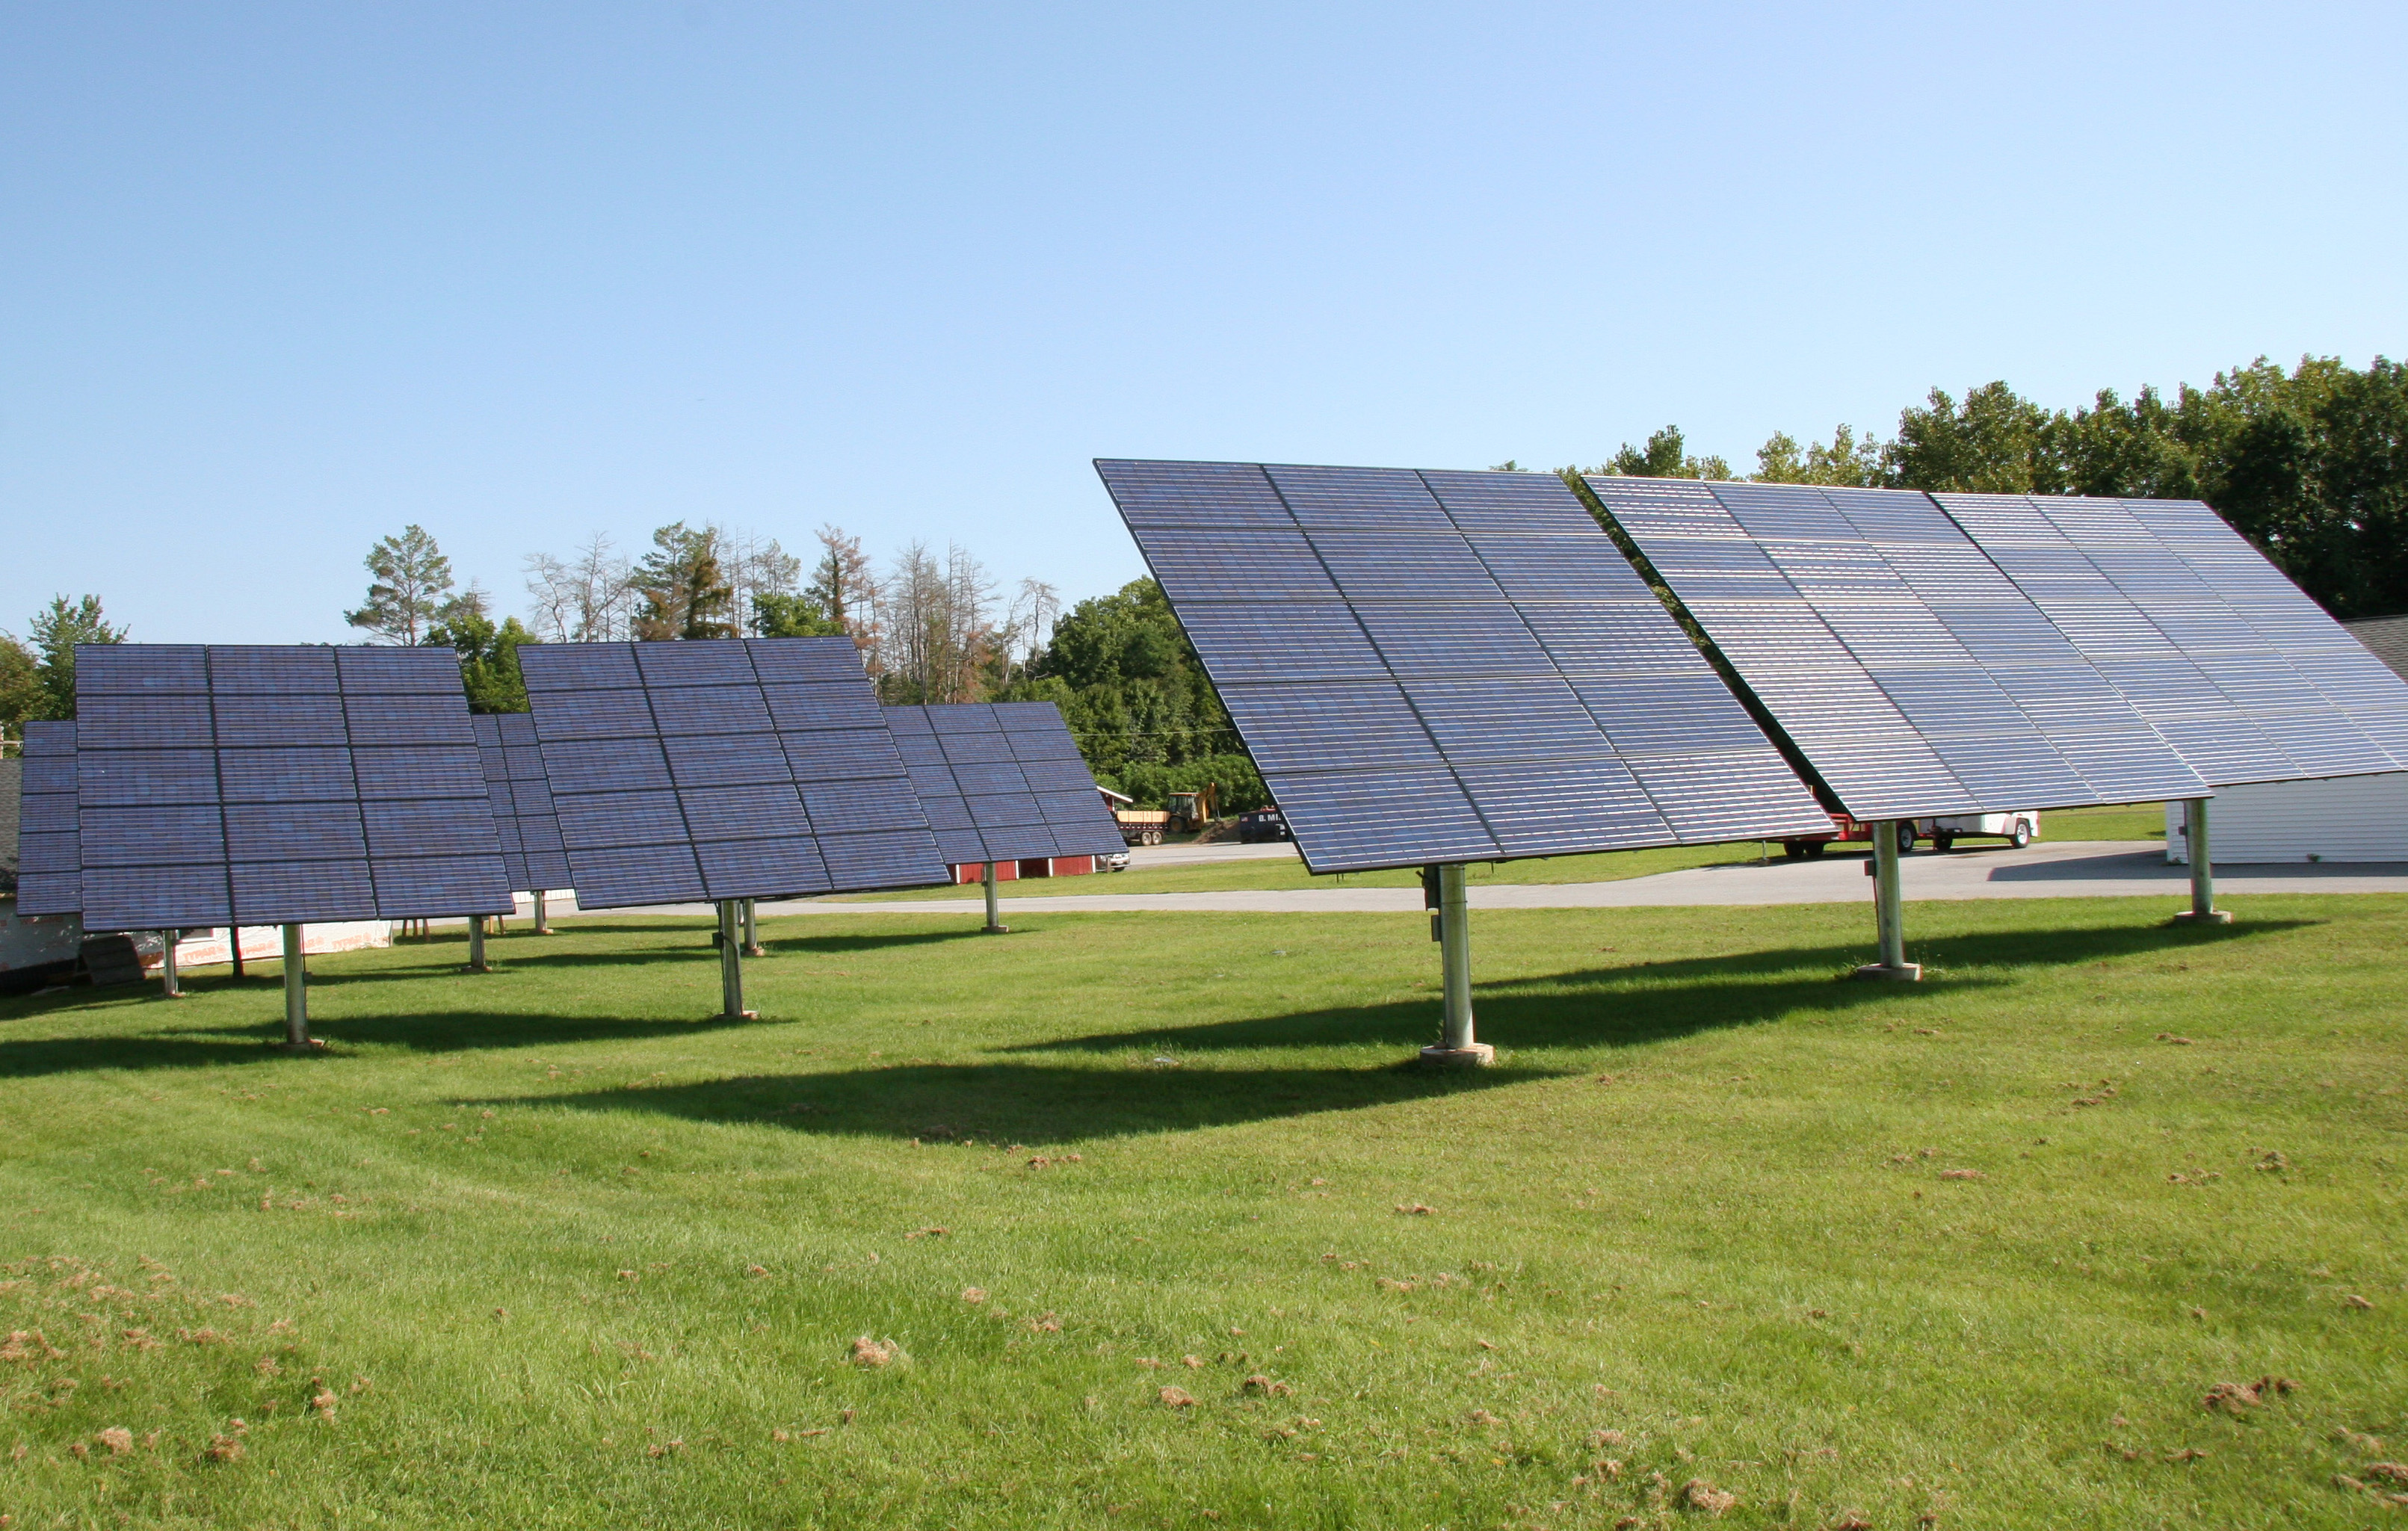 Panels similar to those to be installed on Bard Campus.